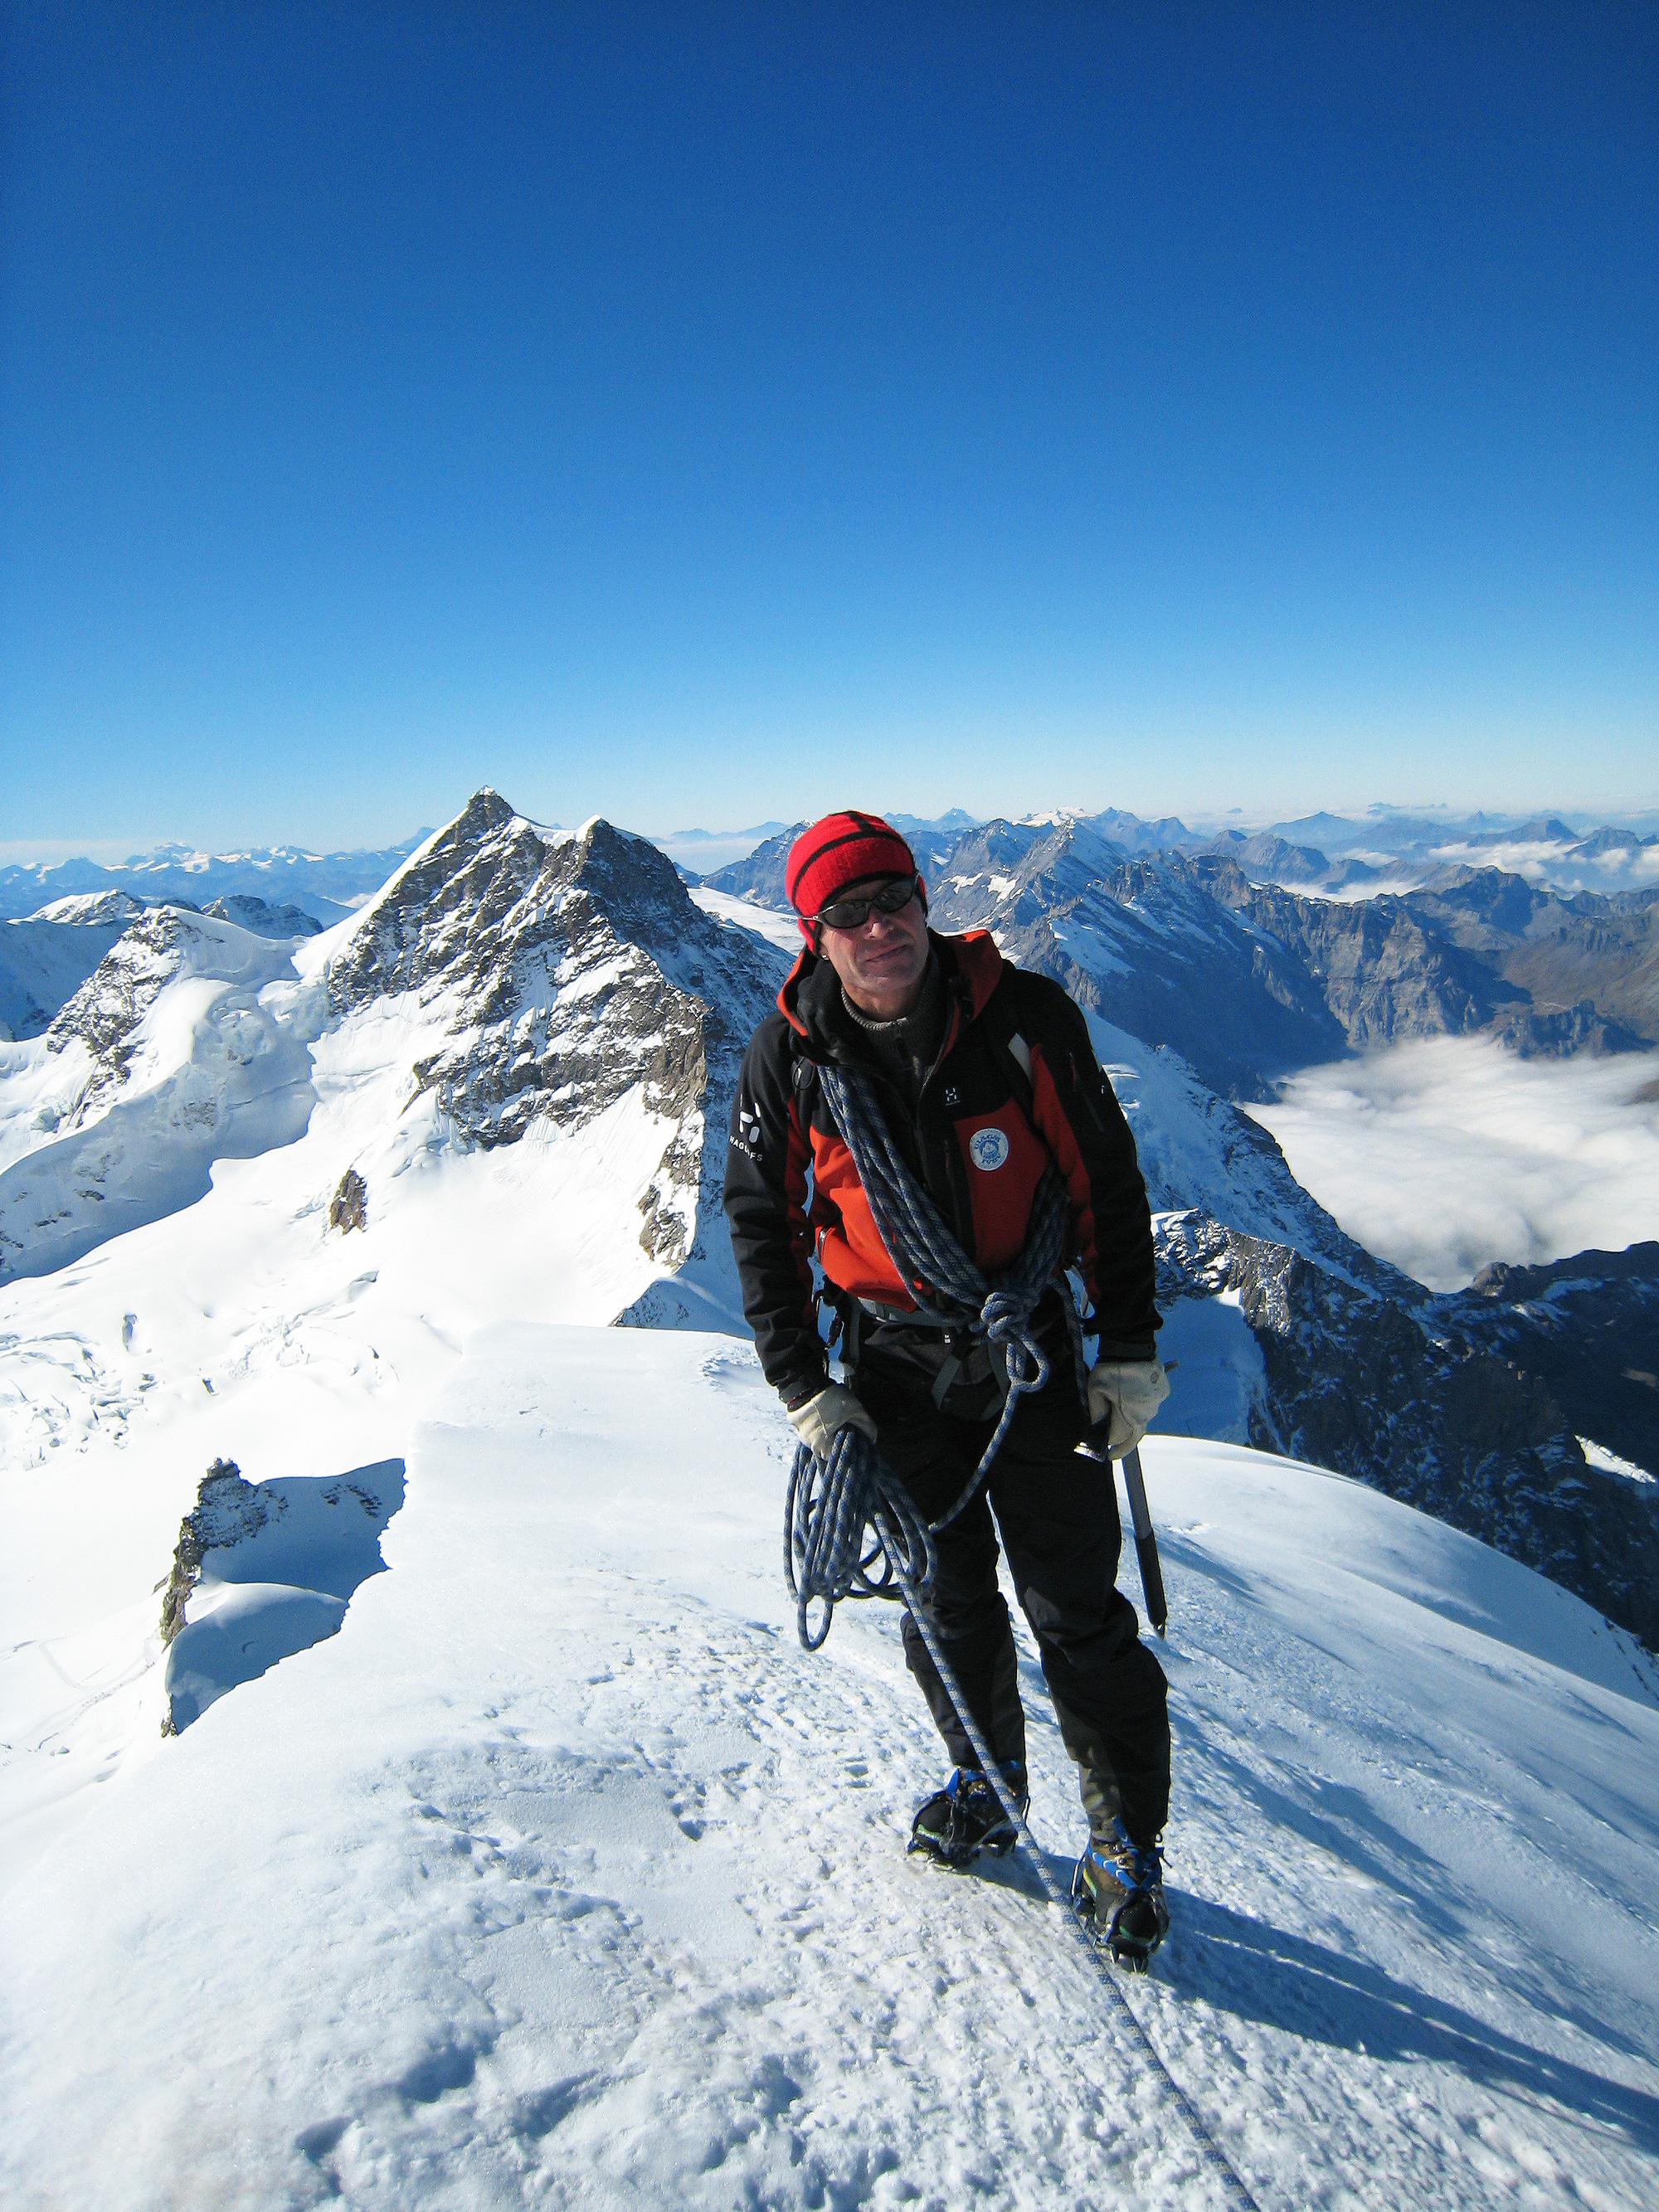 Debunking the myths of mountaineering